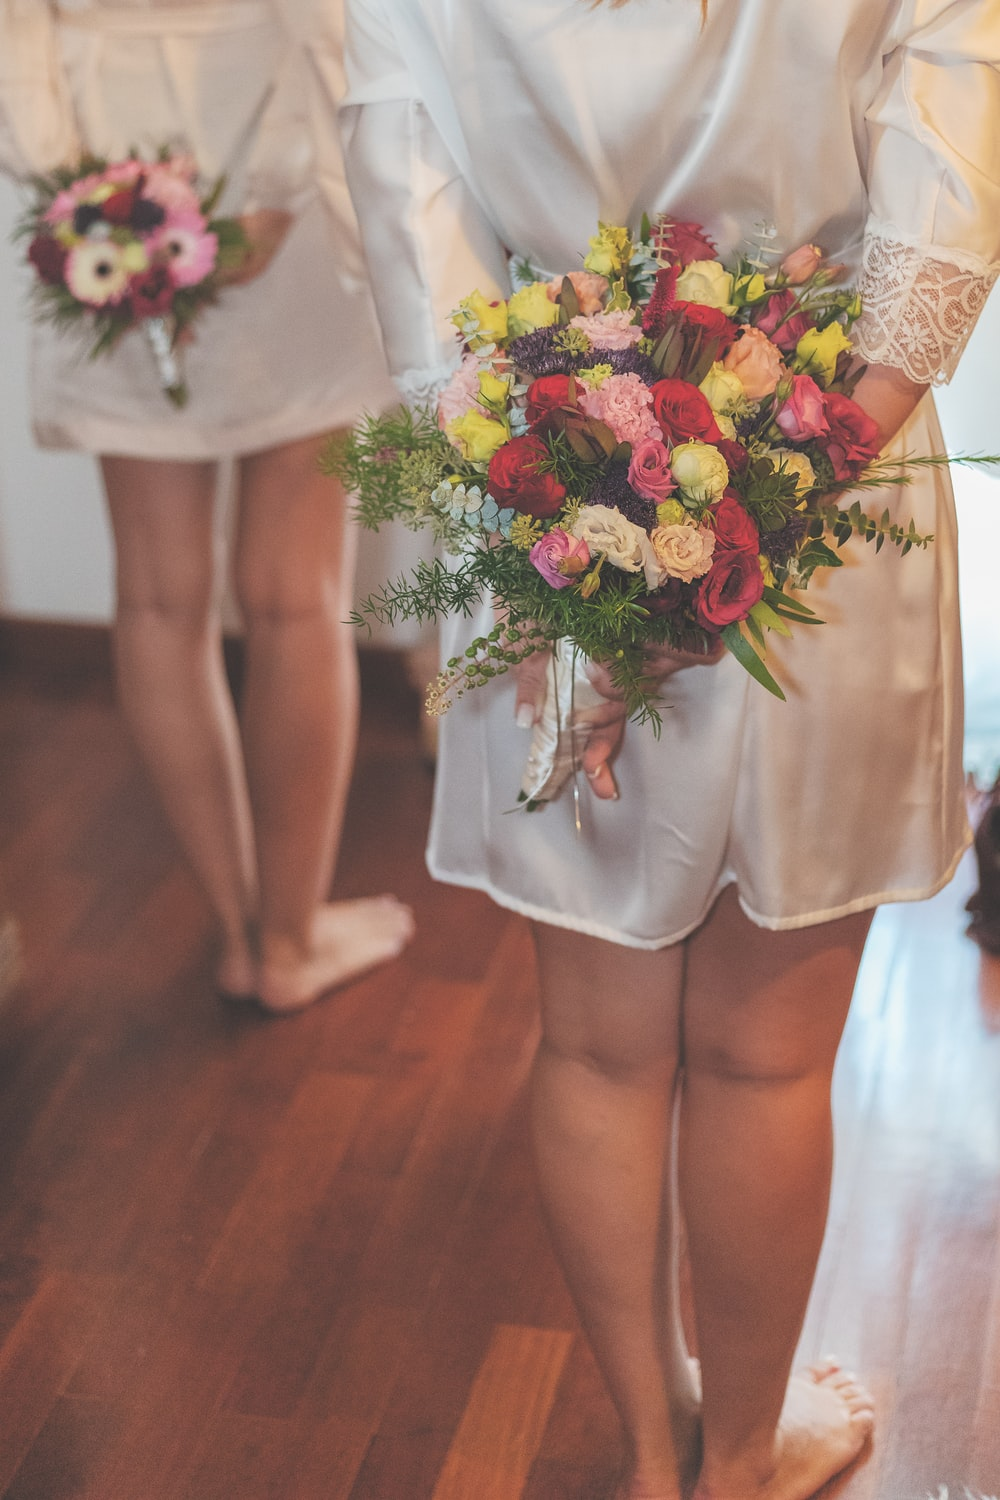 two person wearing white silk robes while holding multicolored bouquets